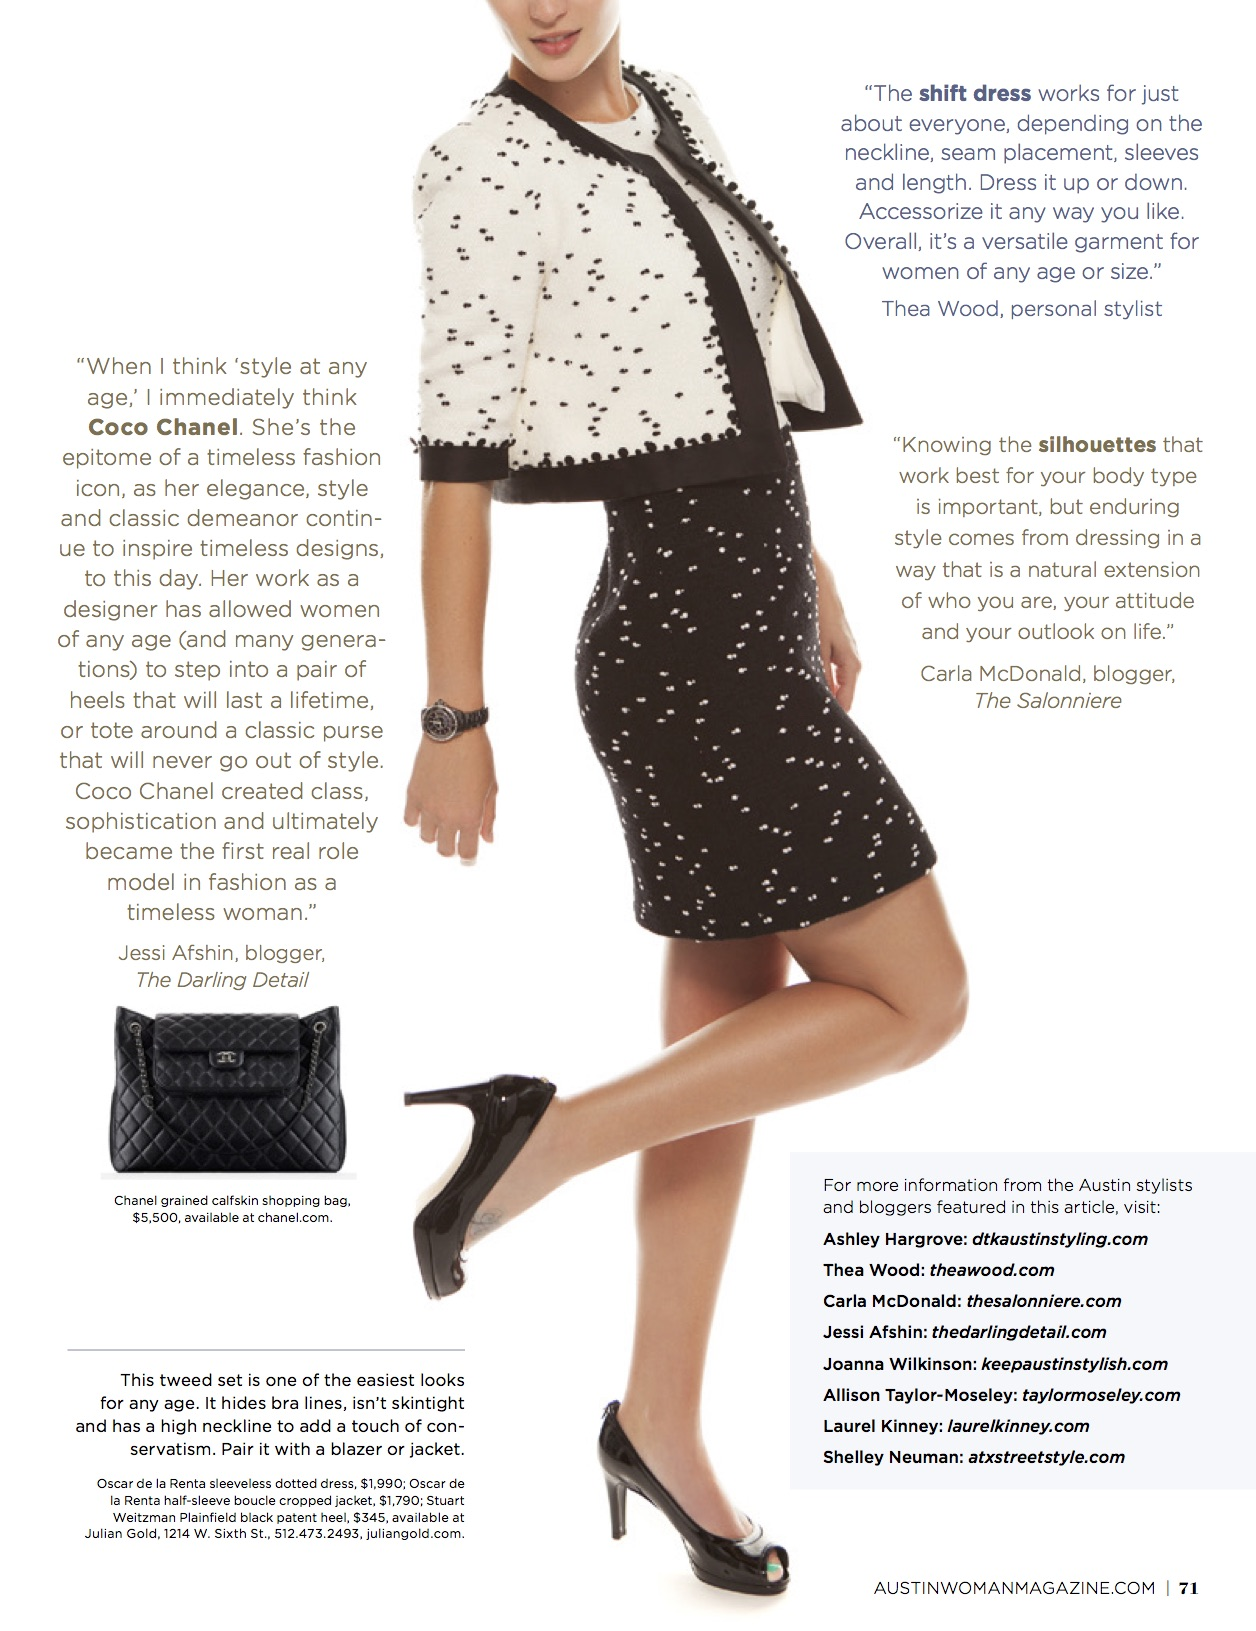 Wardrobe Stylist DTKAustin shares how to have timeless style at any age with these simple tips. | style tips and tricks | timeless style ideas | timeless fashion tips || Dressed to Kill #timelessbeauty #timelessstyle